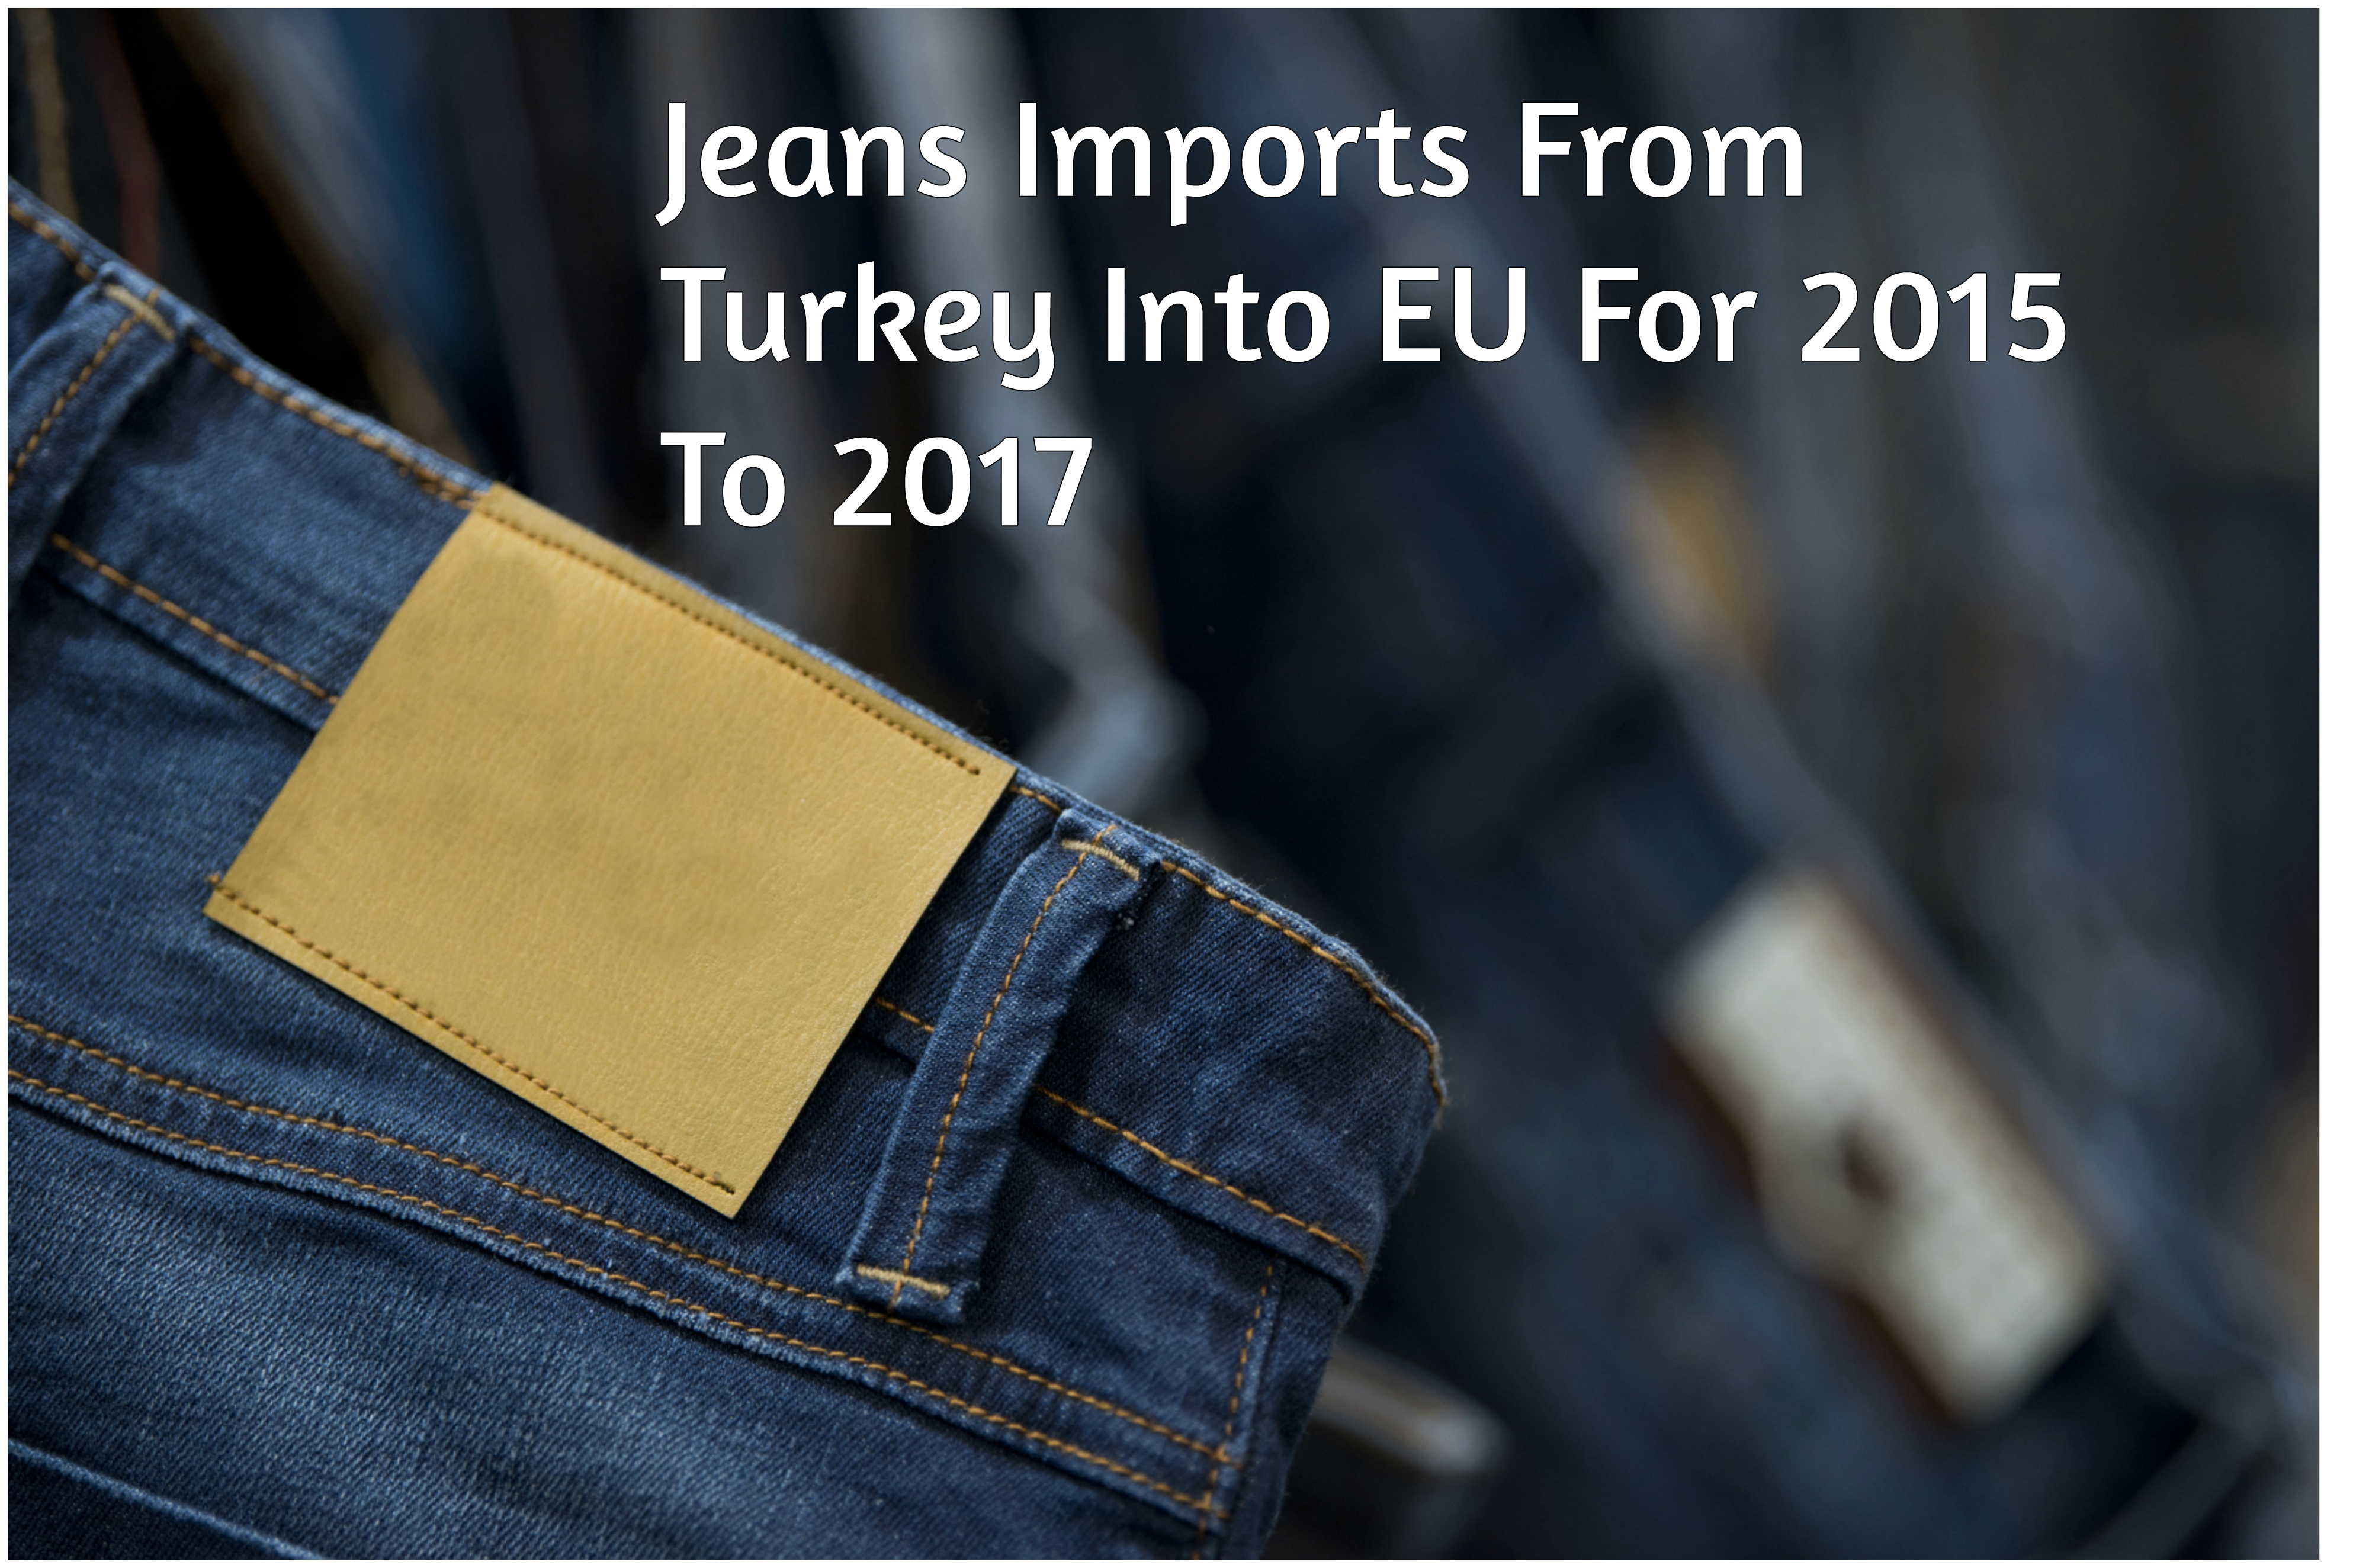 Jeans Imports From Turkey Into EU For 2015 To 2017